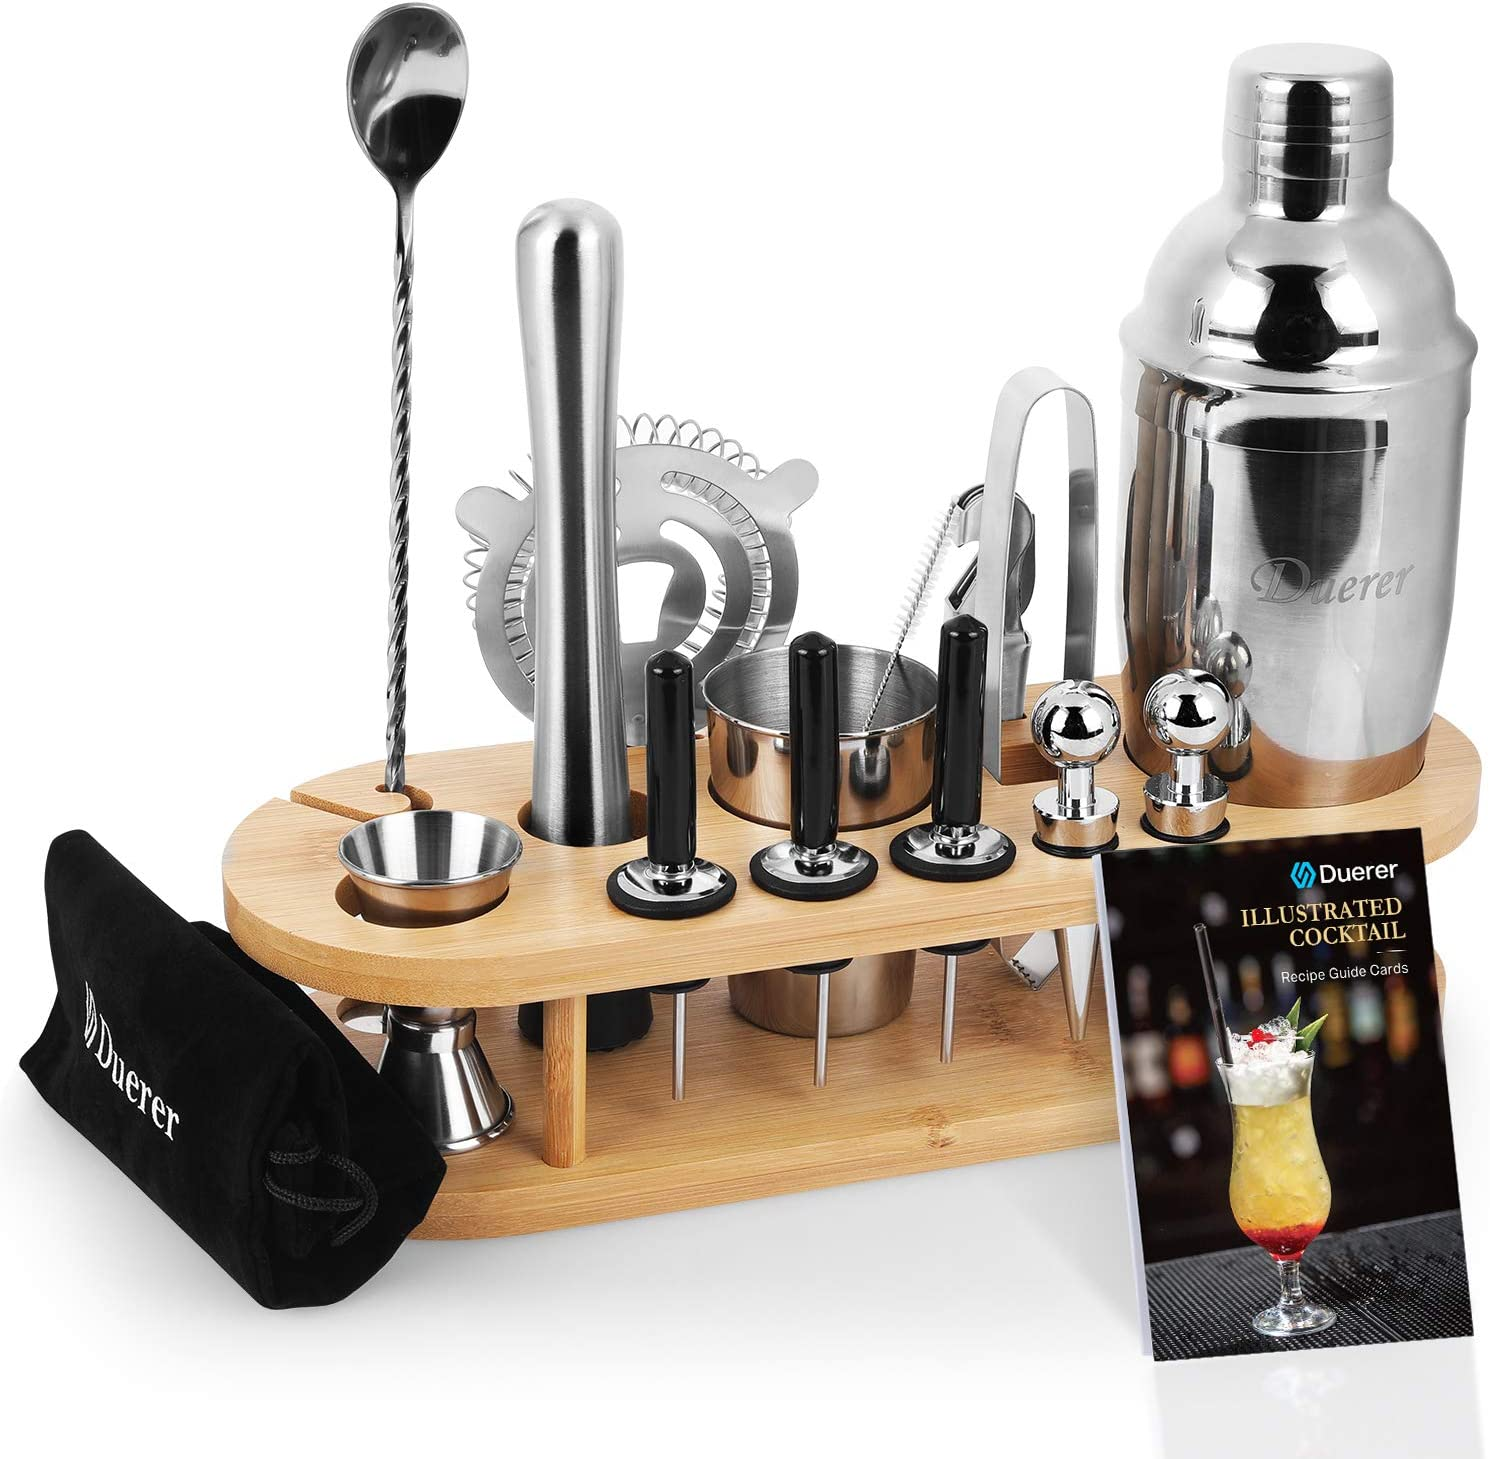 Duerer Cocktail Shaker Set, 23-Piece Professional Martini Bartender Kit with Bamboo Stand, Perfect Home Bar Kit Have Cocktail Shaker, Muddler, Jigger, Strainer, Velvet Carry Bag & Recipes, and More